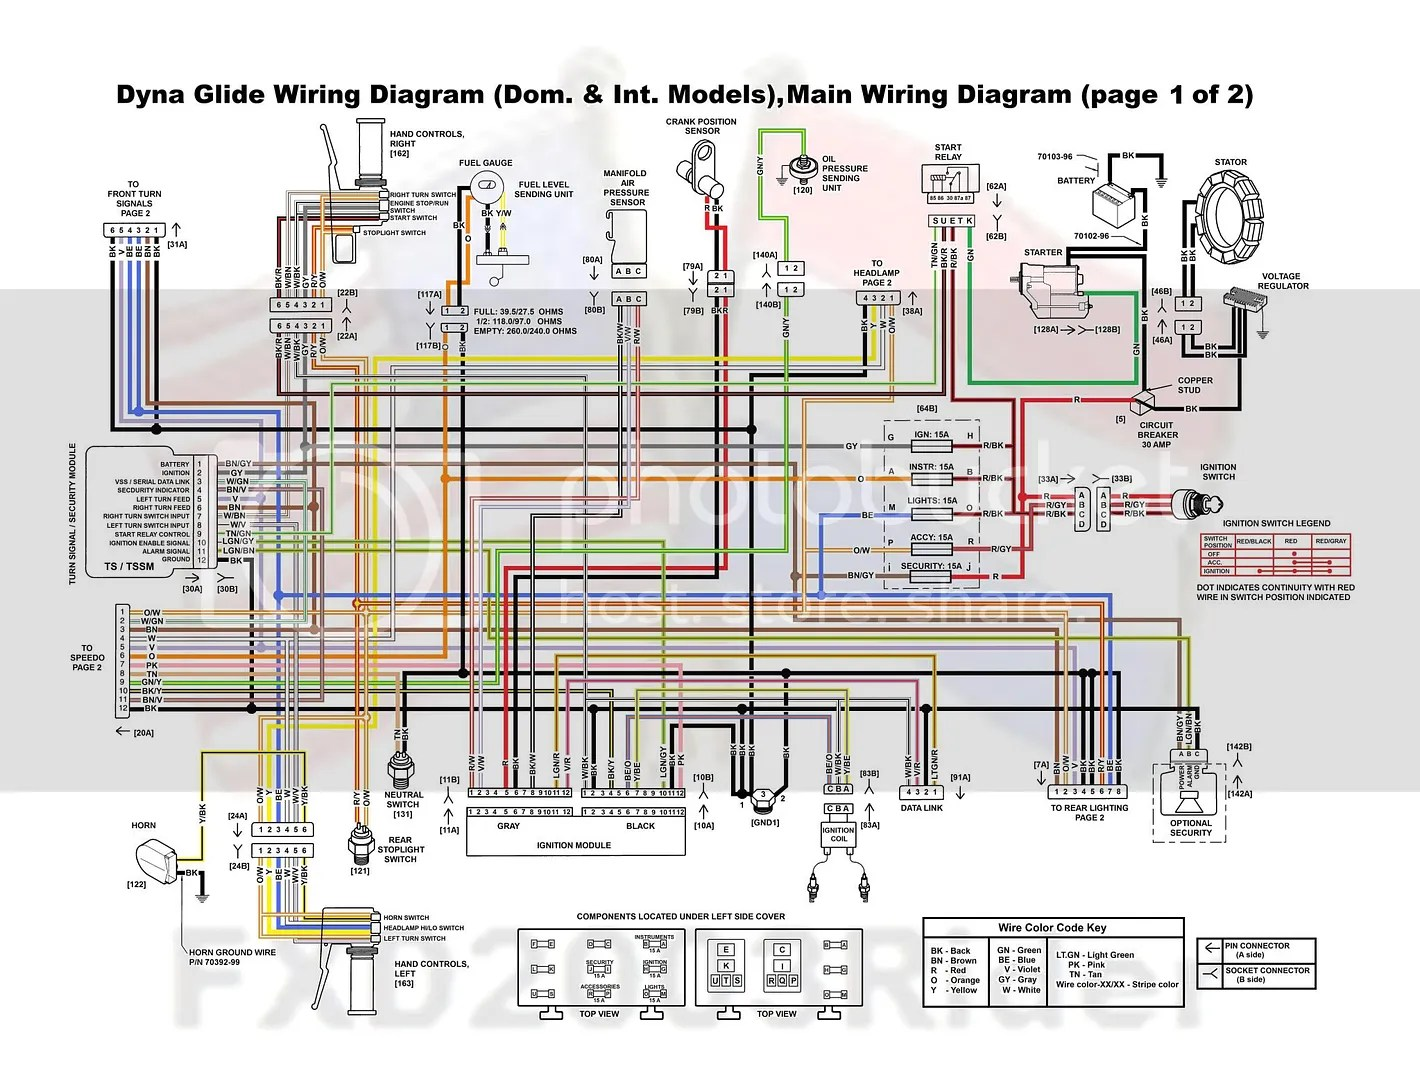 harley softail wiring harness wiring diagrams konsult200 harley softail wiring harness wiring diagram toolbox harley softail [ 1420 x 1080 Pixel ]